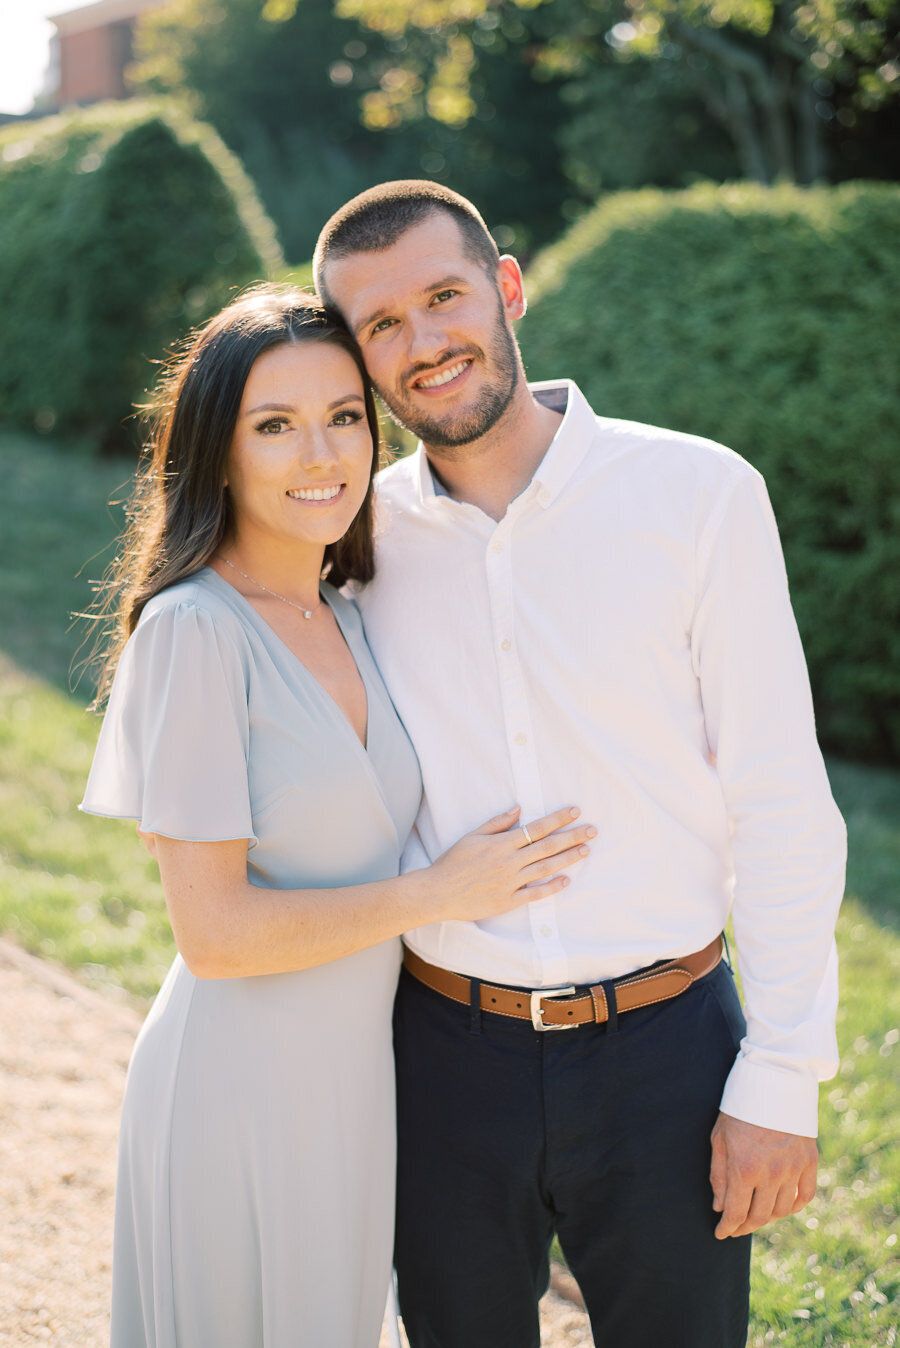 William_Paca_Gardens_Engagement_Session_Megan_Harris_Photography-5